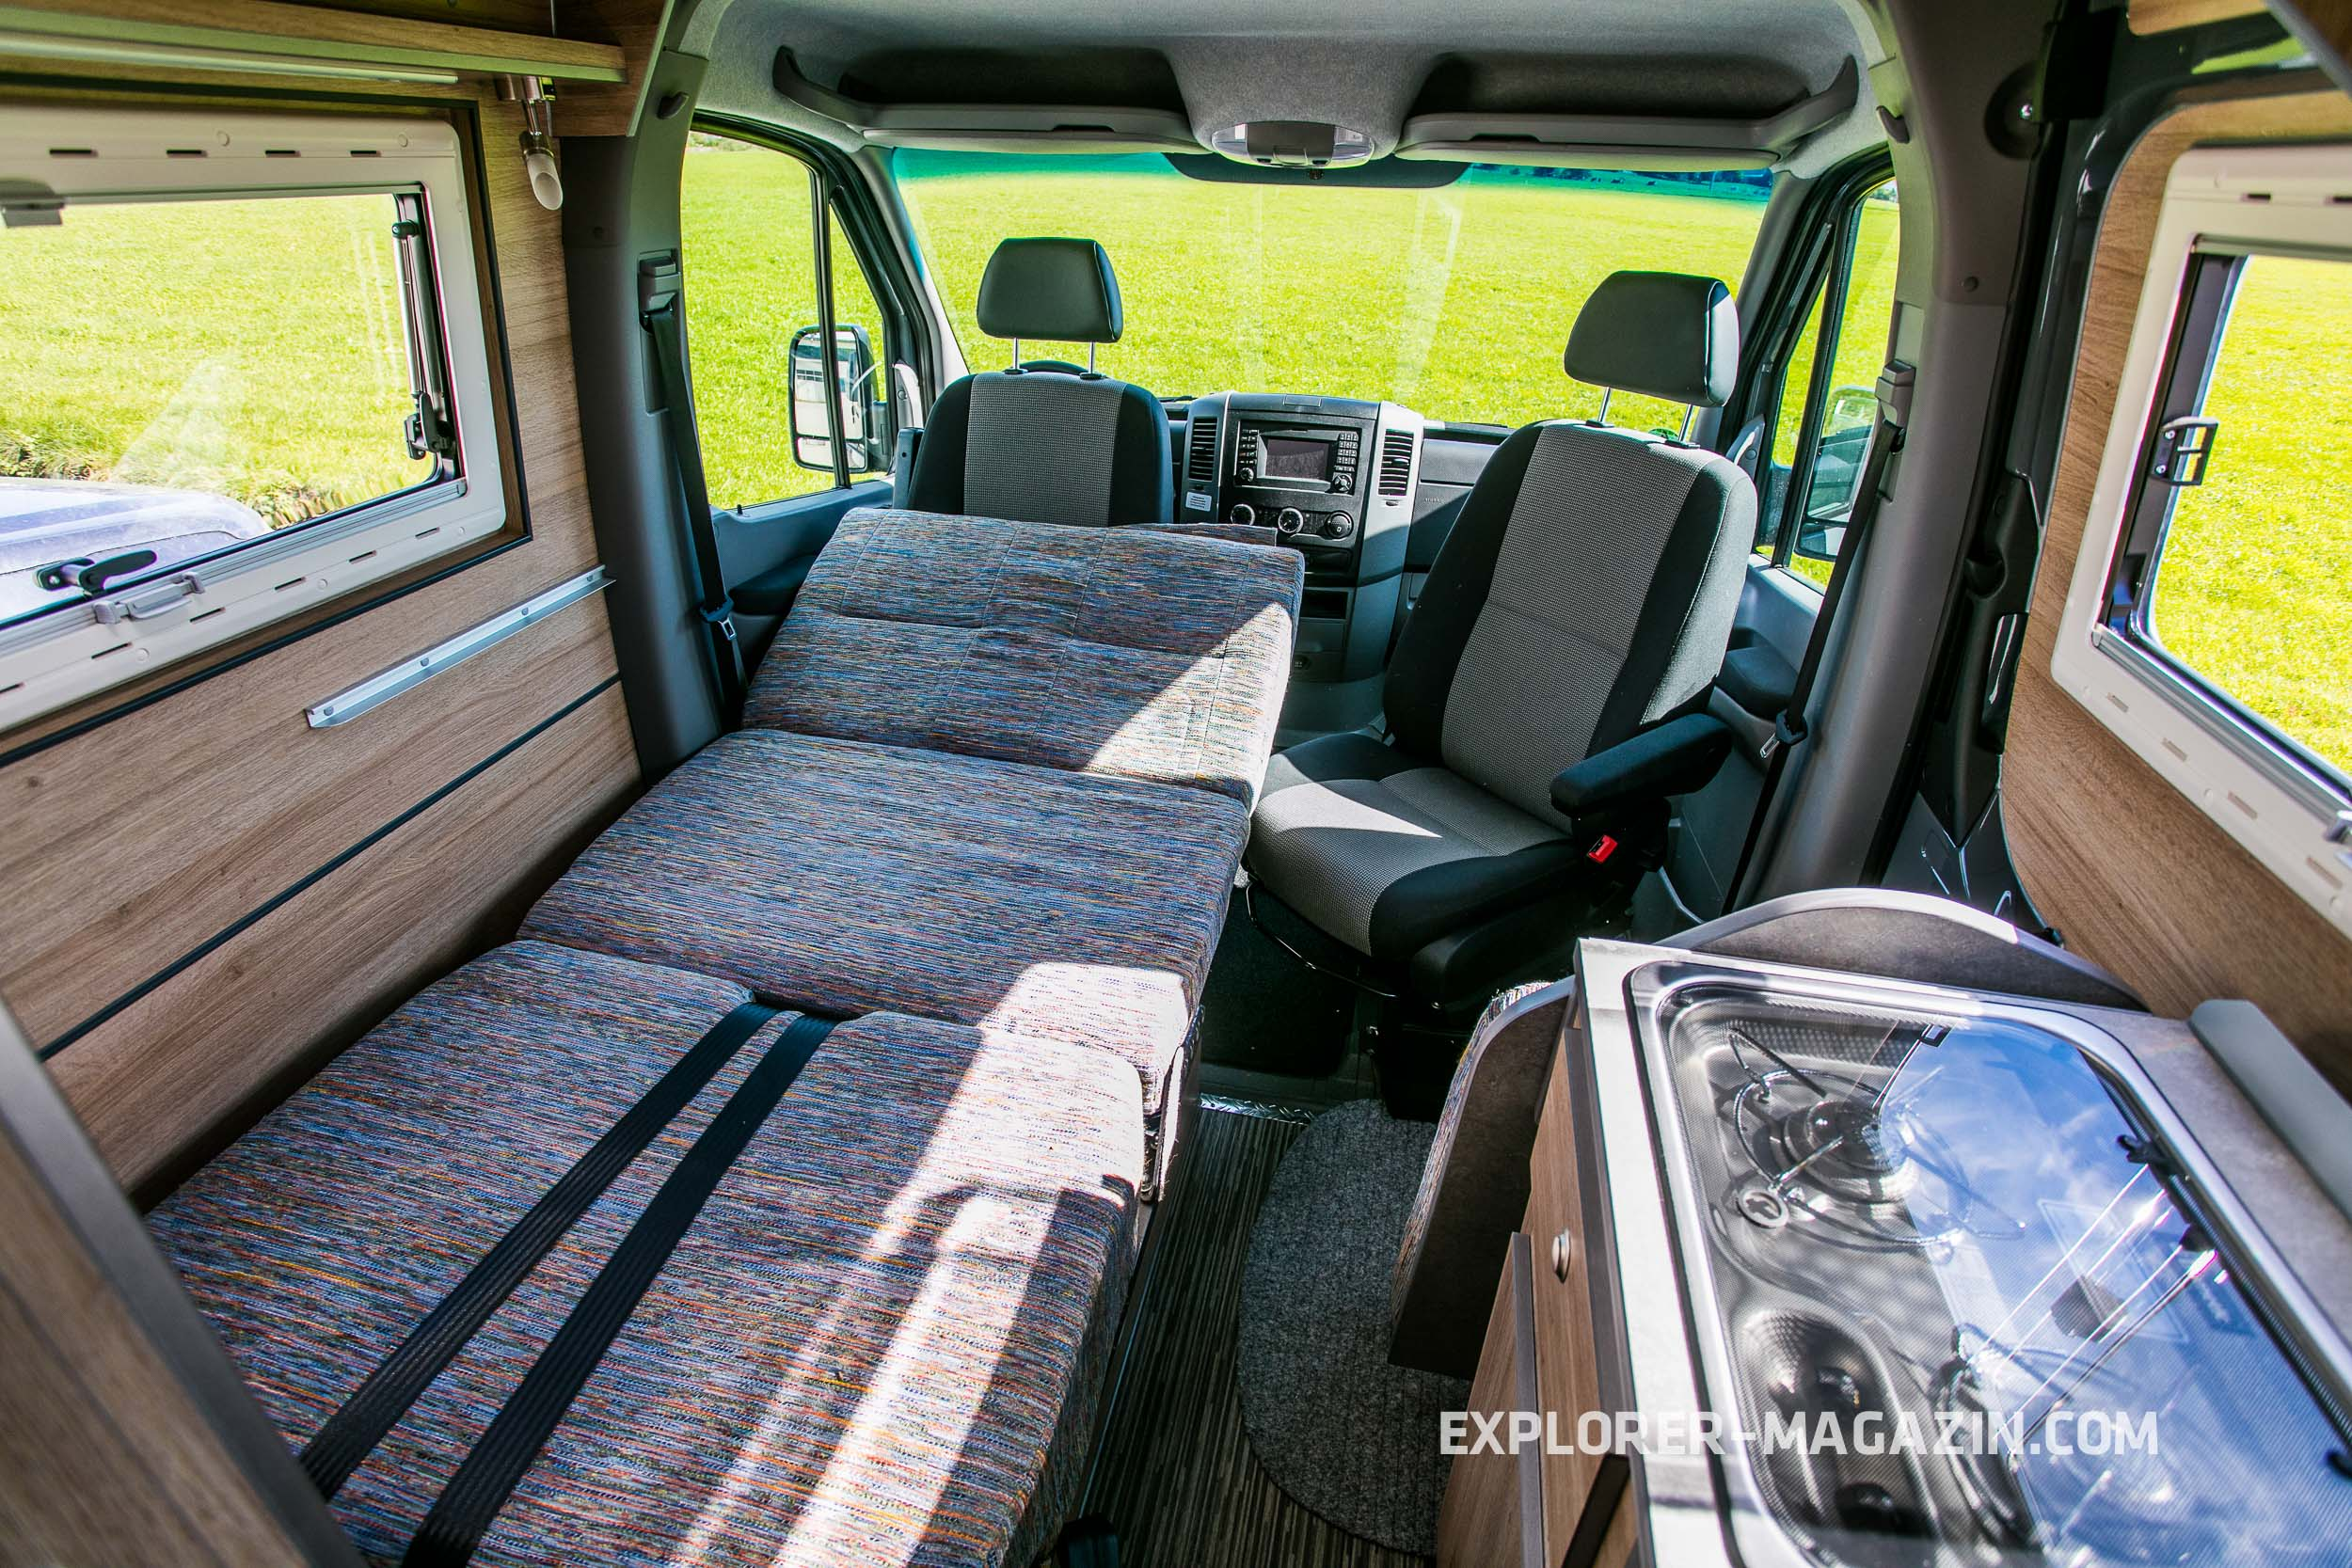 VW Crafter 4motion - Ramspeck